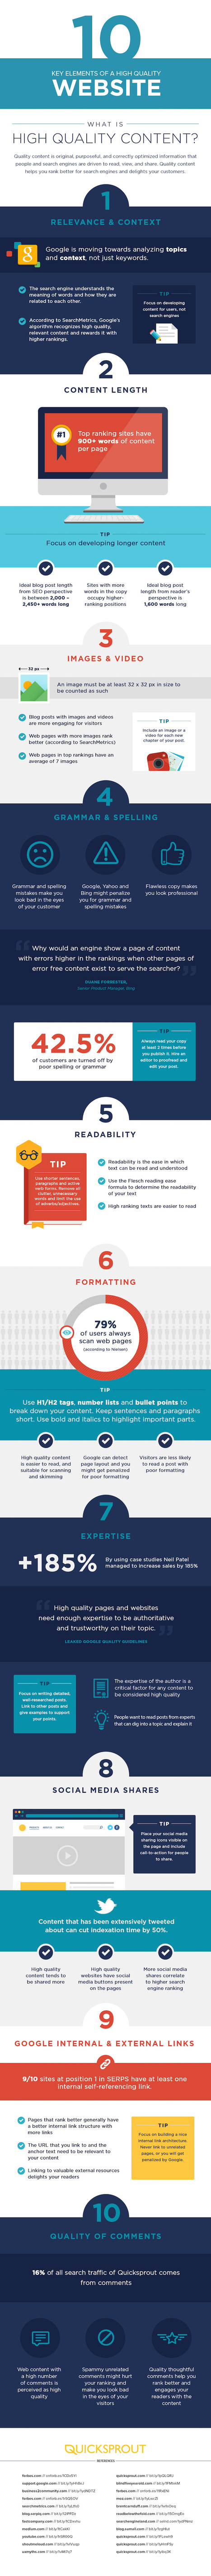 The 10 Key Elements of a High Quality Website | Social Media & sociaal-cultureel werk | Scoop.it